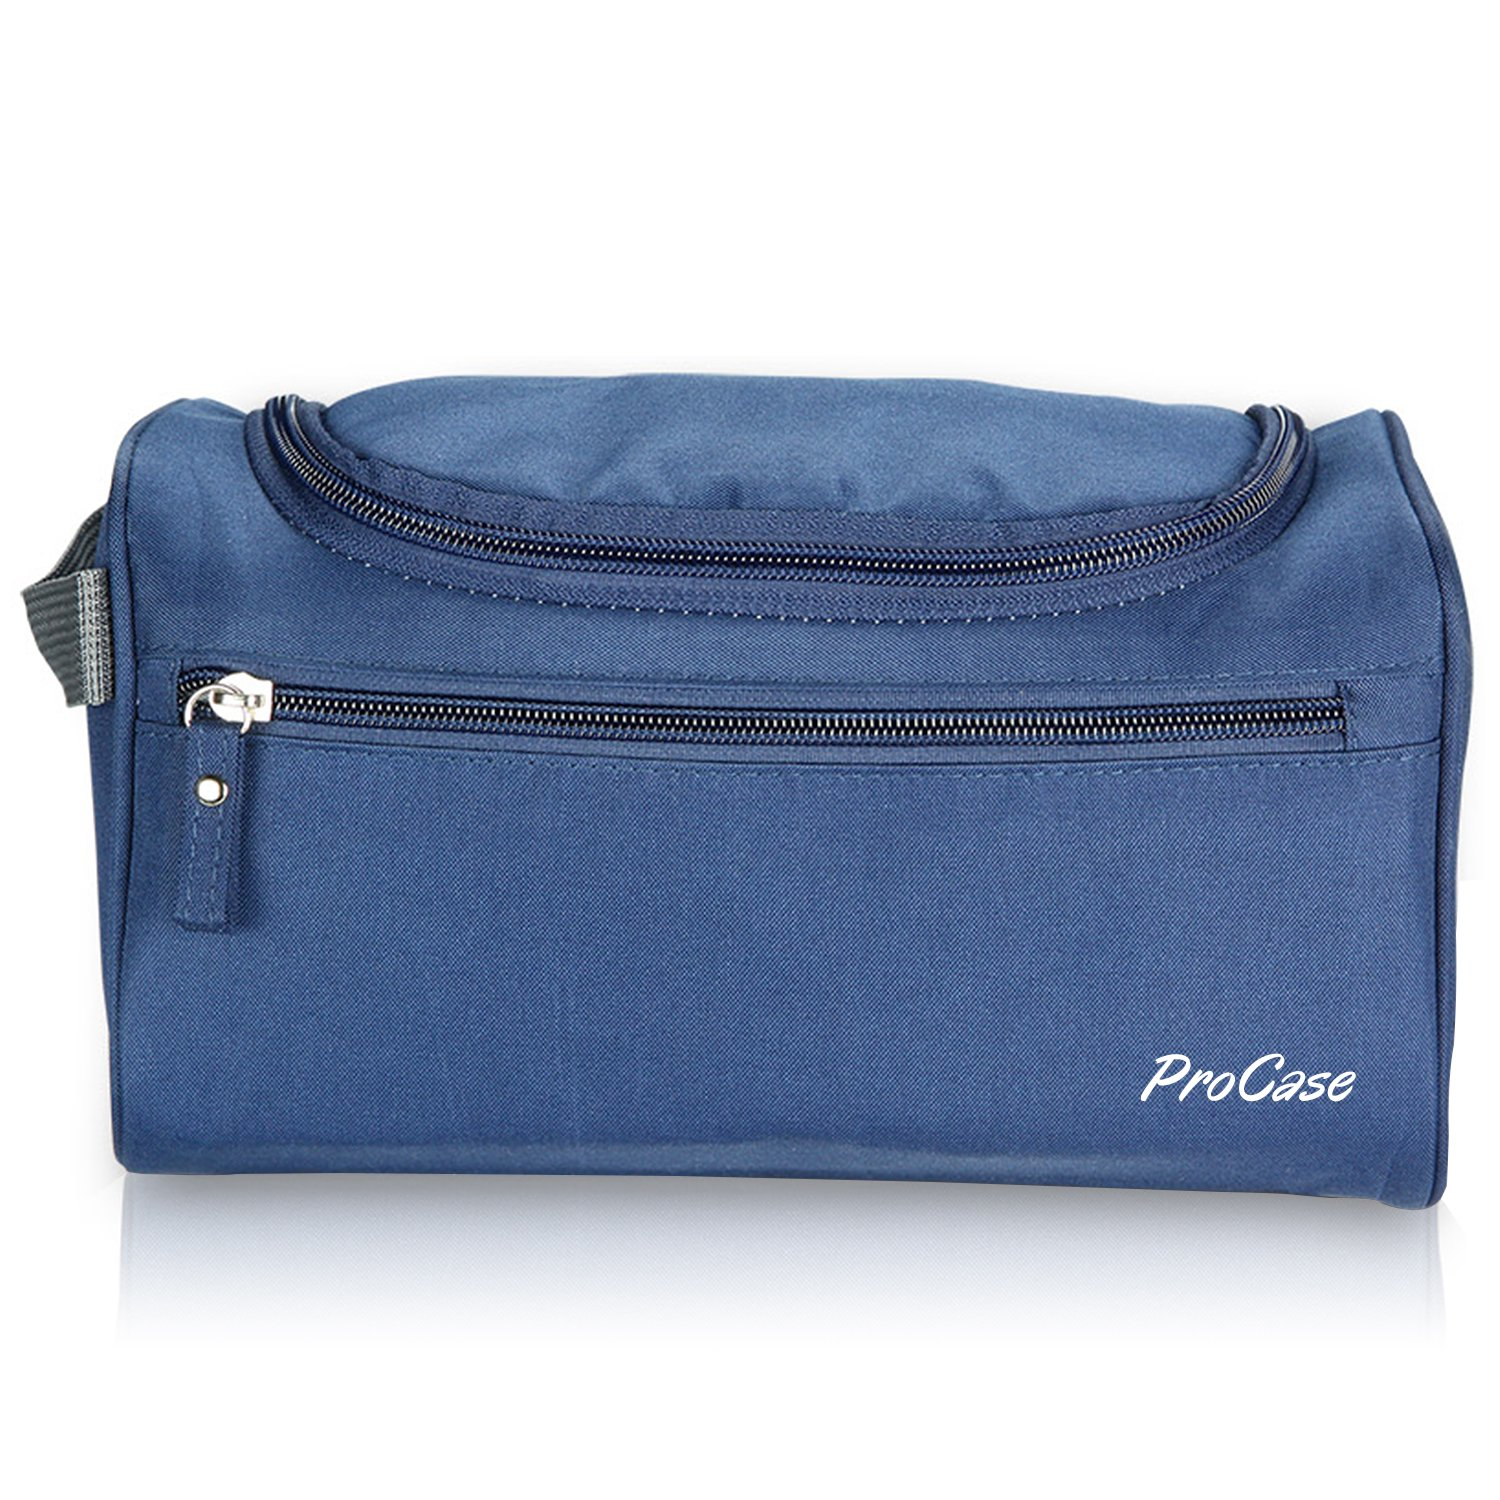 ProCase Toiletry Bag Travel Case with Hanging Hook, Organizer for Accessories, Shampoo, Cosmetic, Personal Items, Healthcare Bag with Handle, Navy Blue